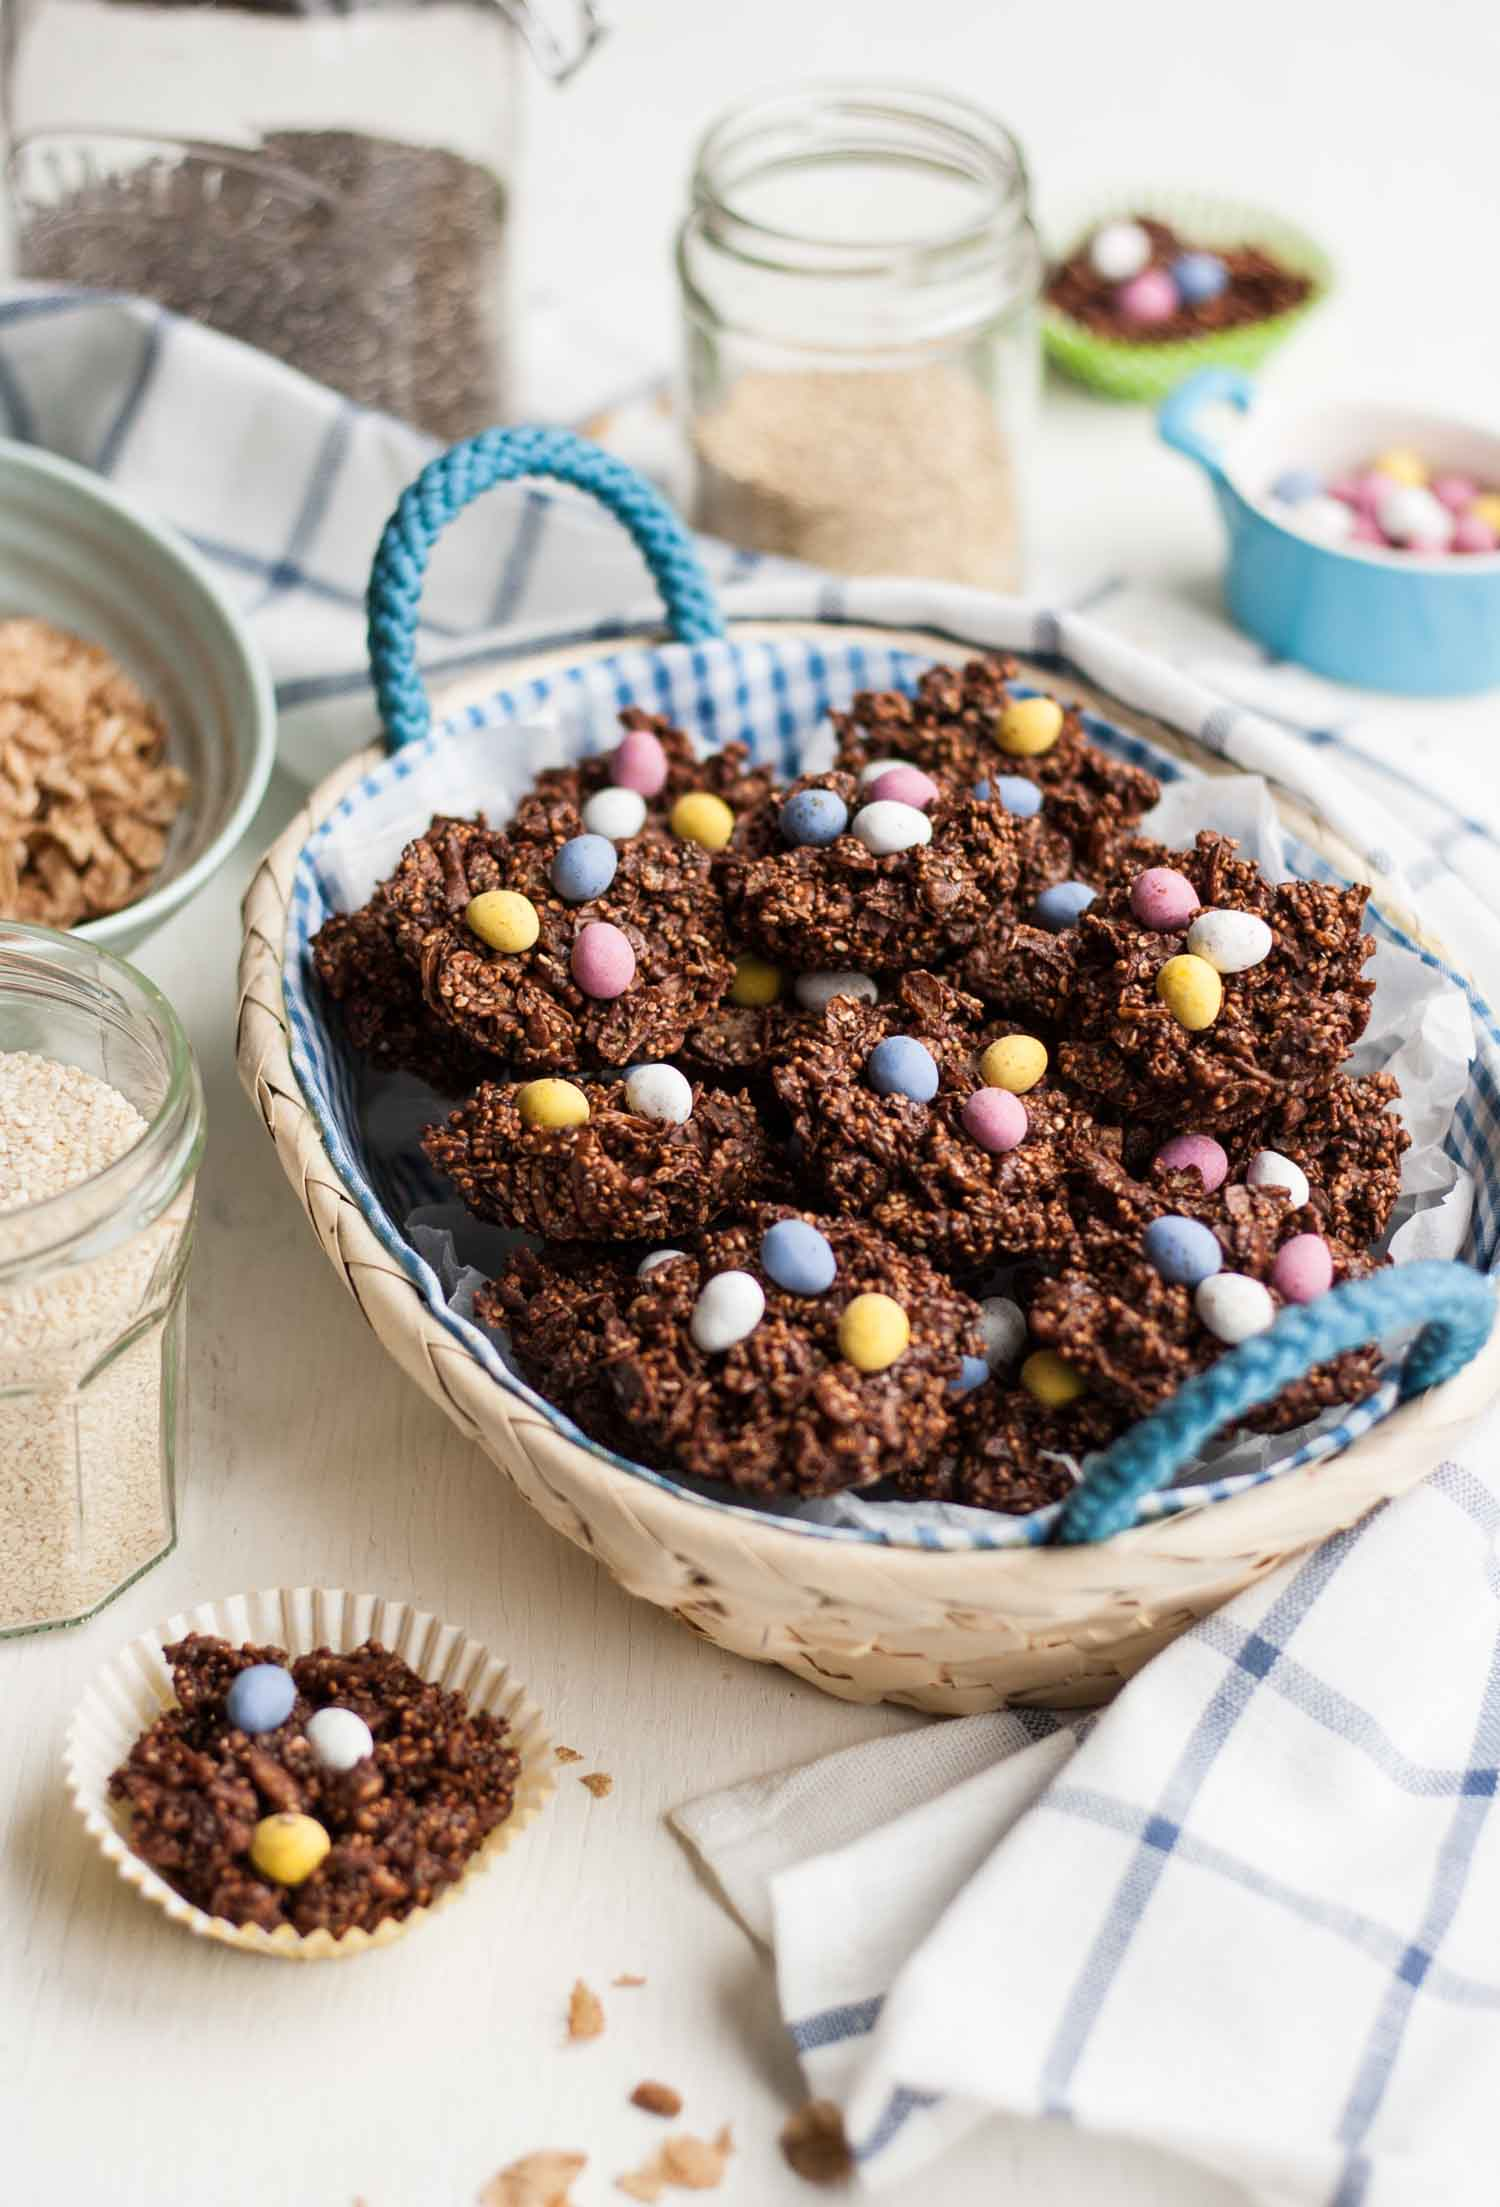 Super-Seeded Easter Nests - this recipe for crispy Easter nests, full of wholesome nuts and seeds, can be whipped up in 15 minutes for a quick and easy treat!   eatloveeats.com